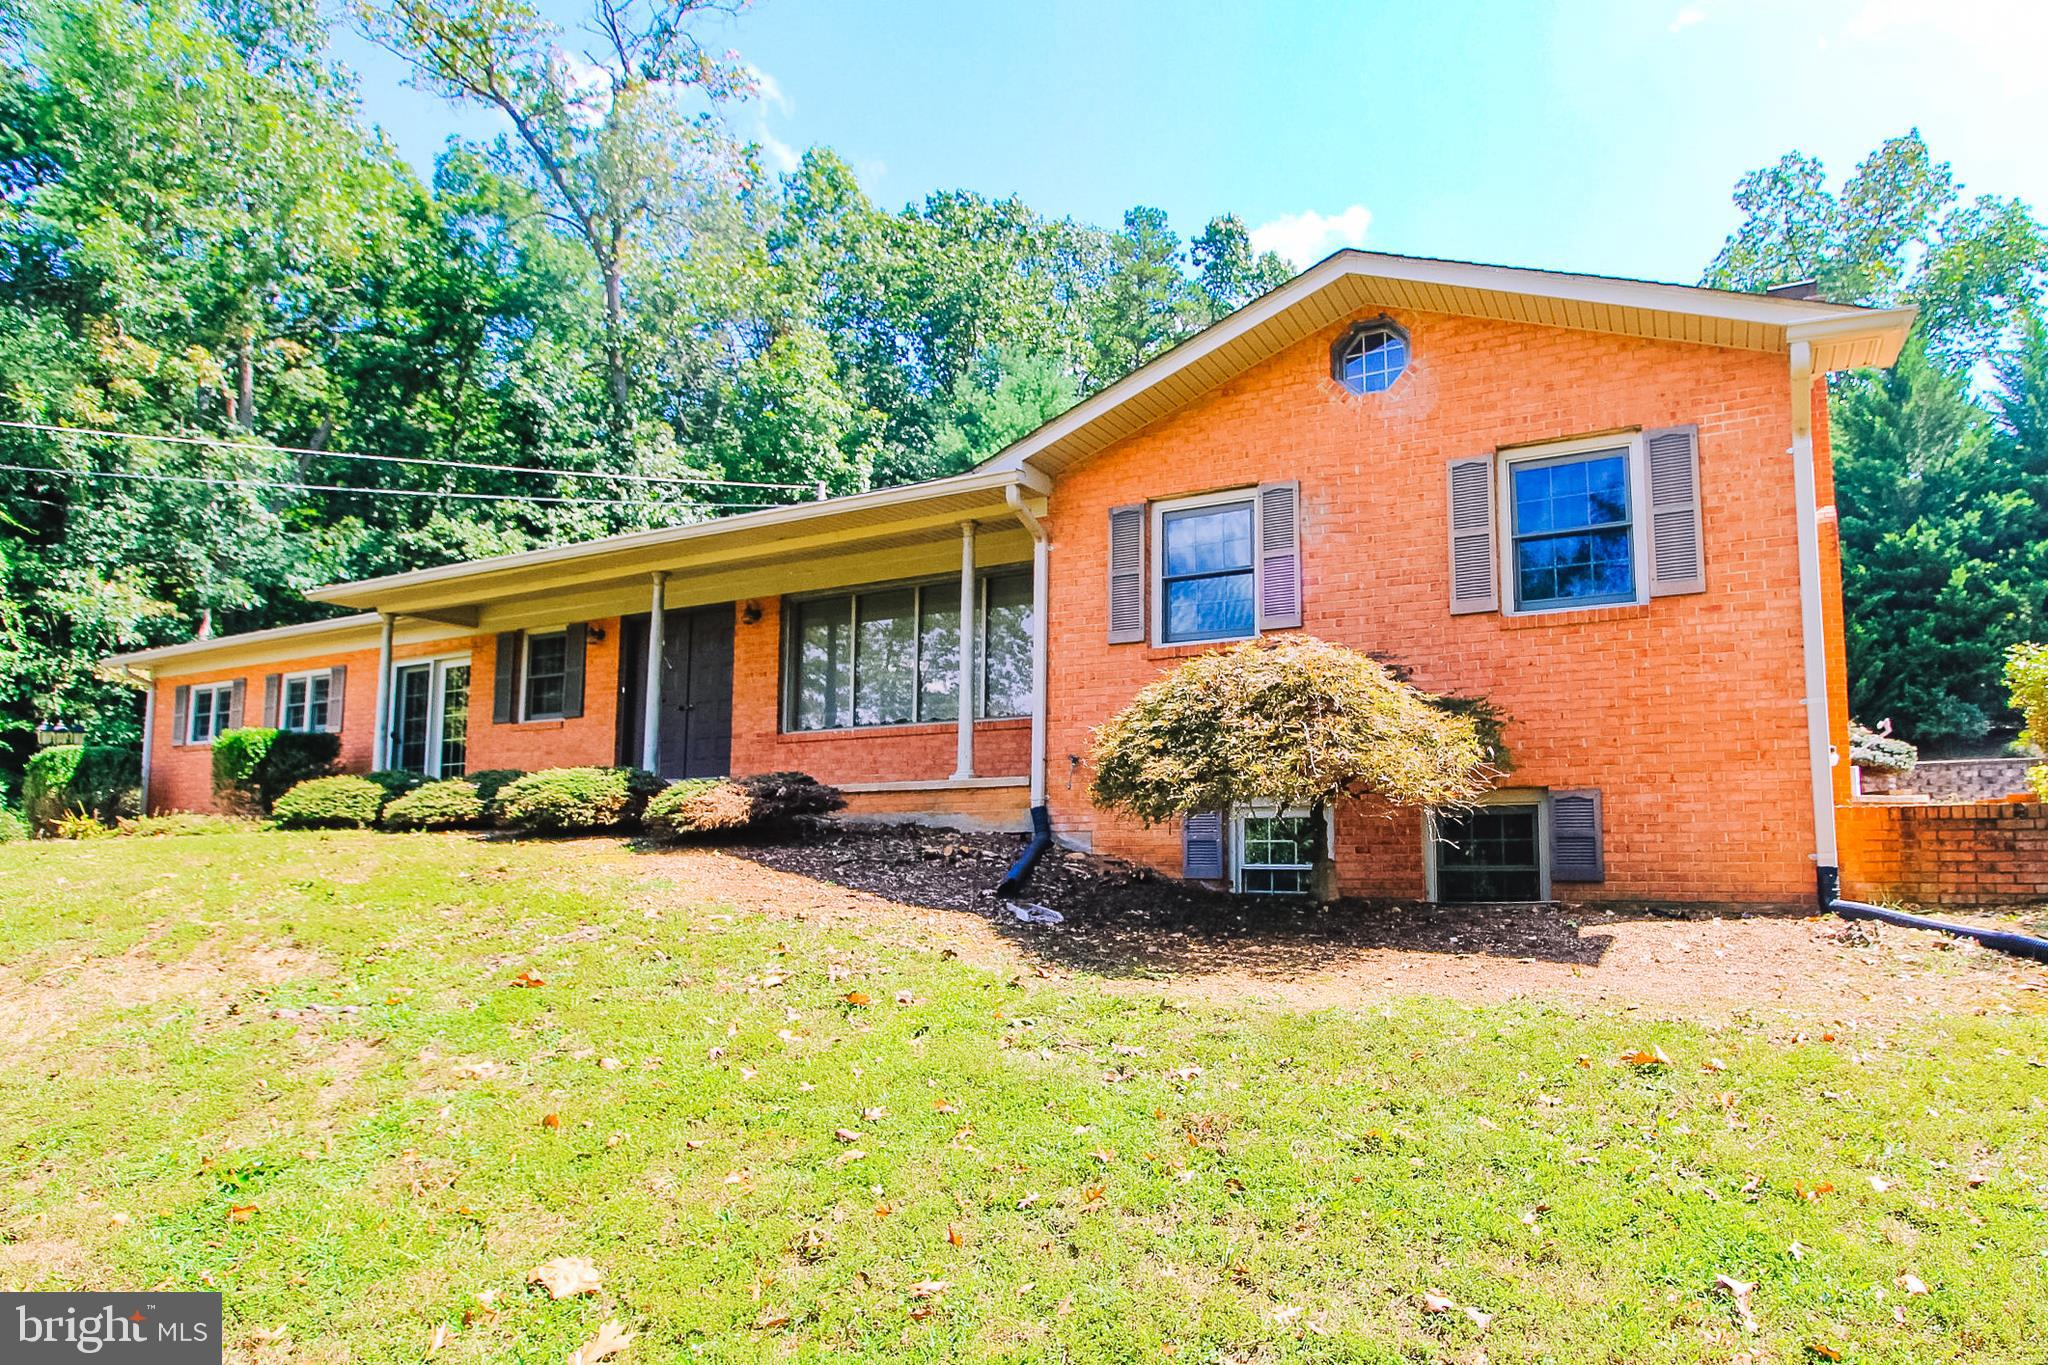 620 CLEARVIEW ROAD, LURAY, VA 22835